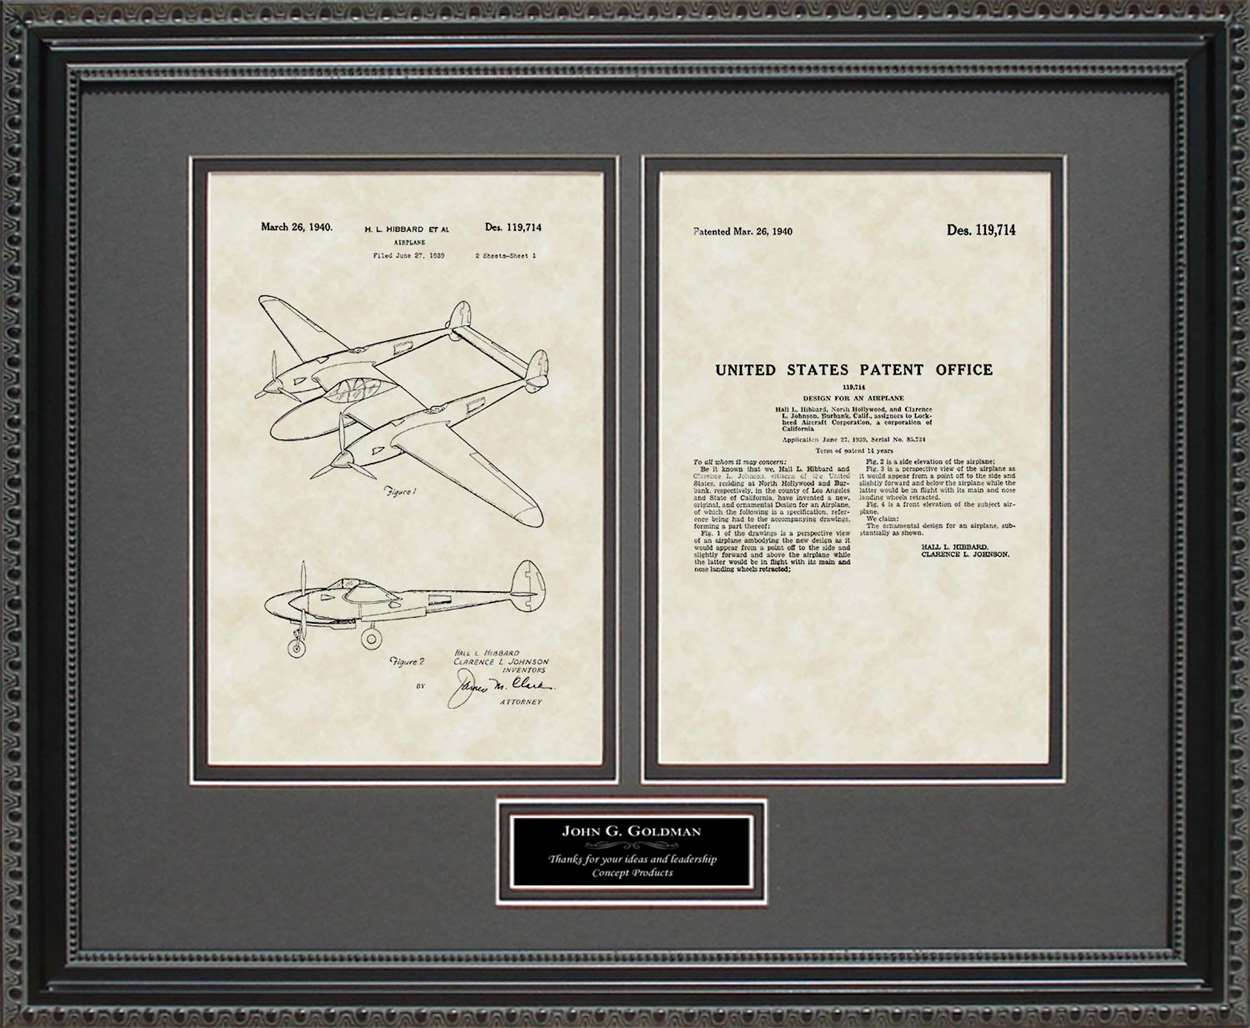 Personalized P-38 Aircraft Patent, Art & Copy, Hibbard, 1940